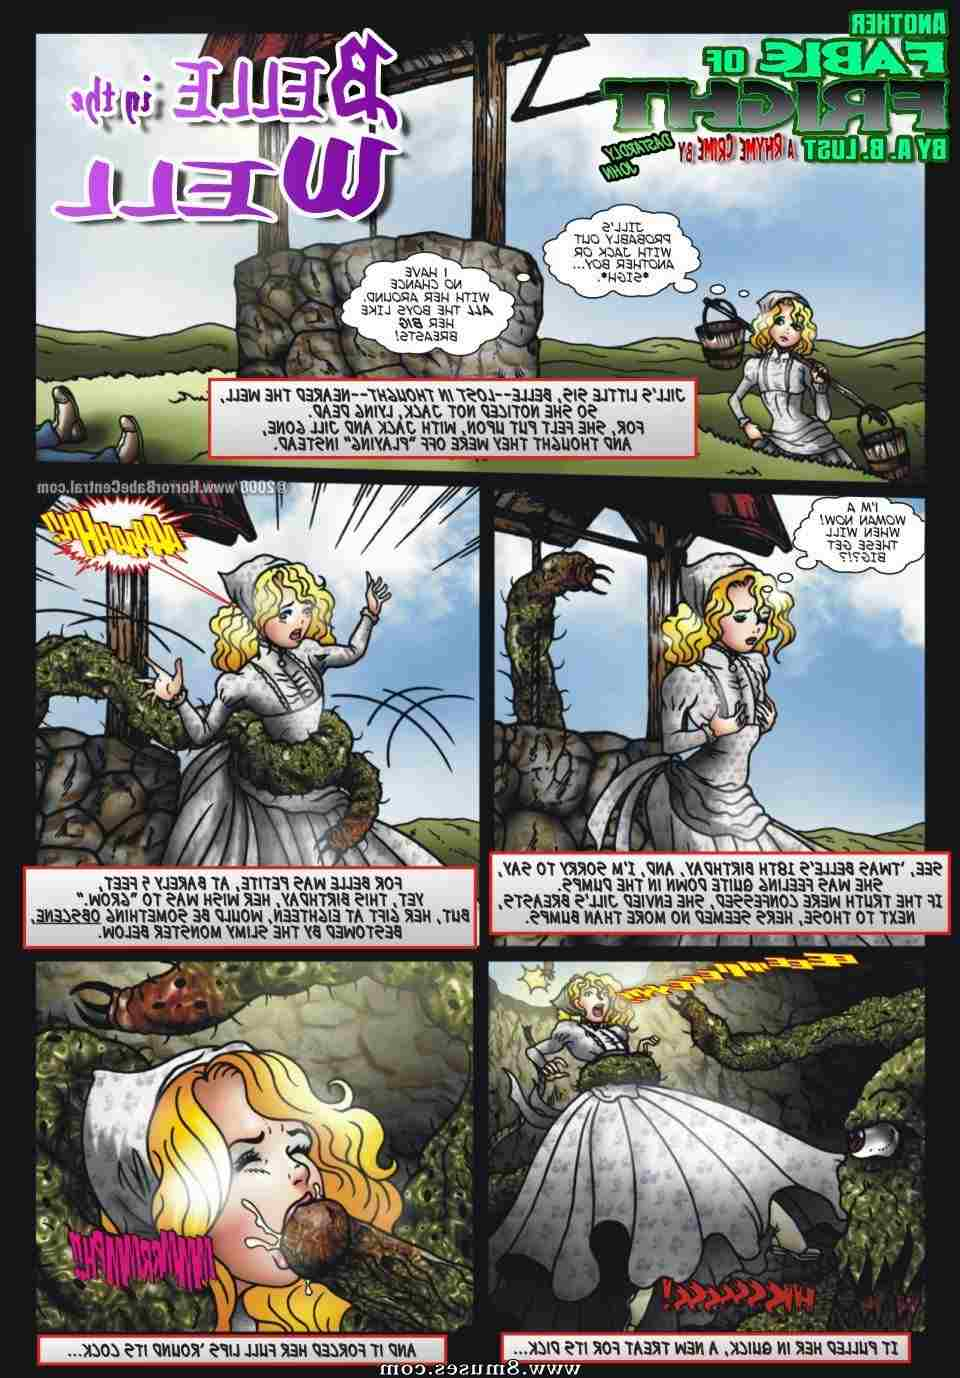 Central-Comics/Horror-Babe-Central/Fable-of-Fright Fable_of_Fright__8muses_-_Sex_and_Porn_Comics_56.jpg